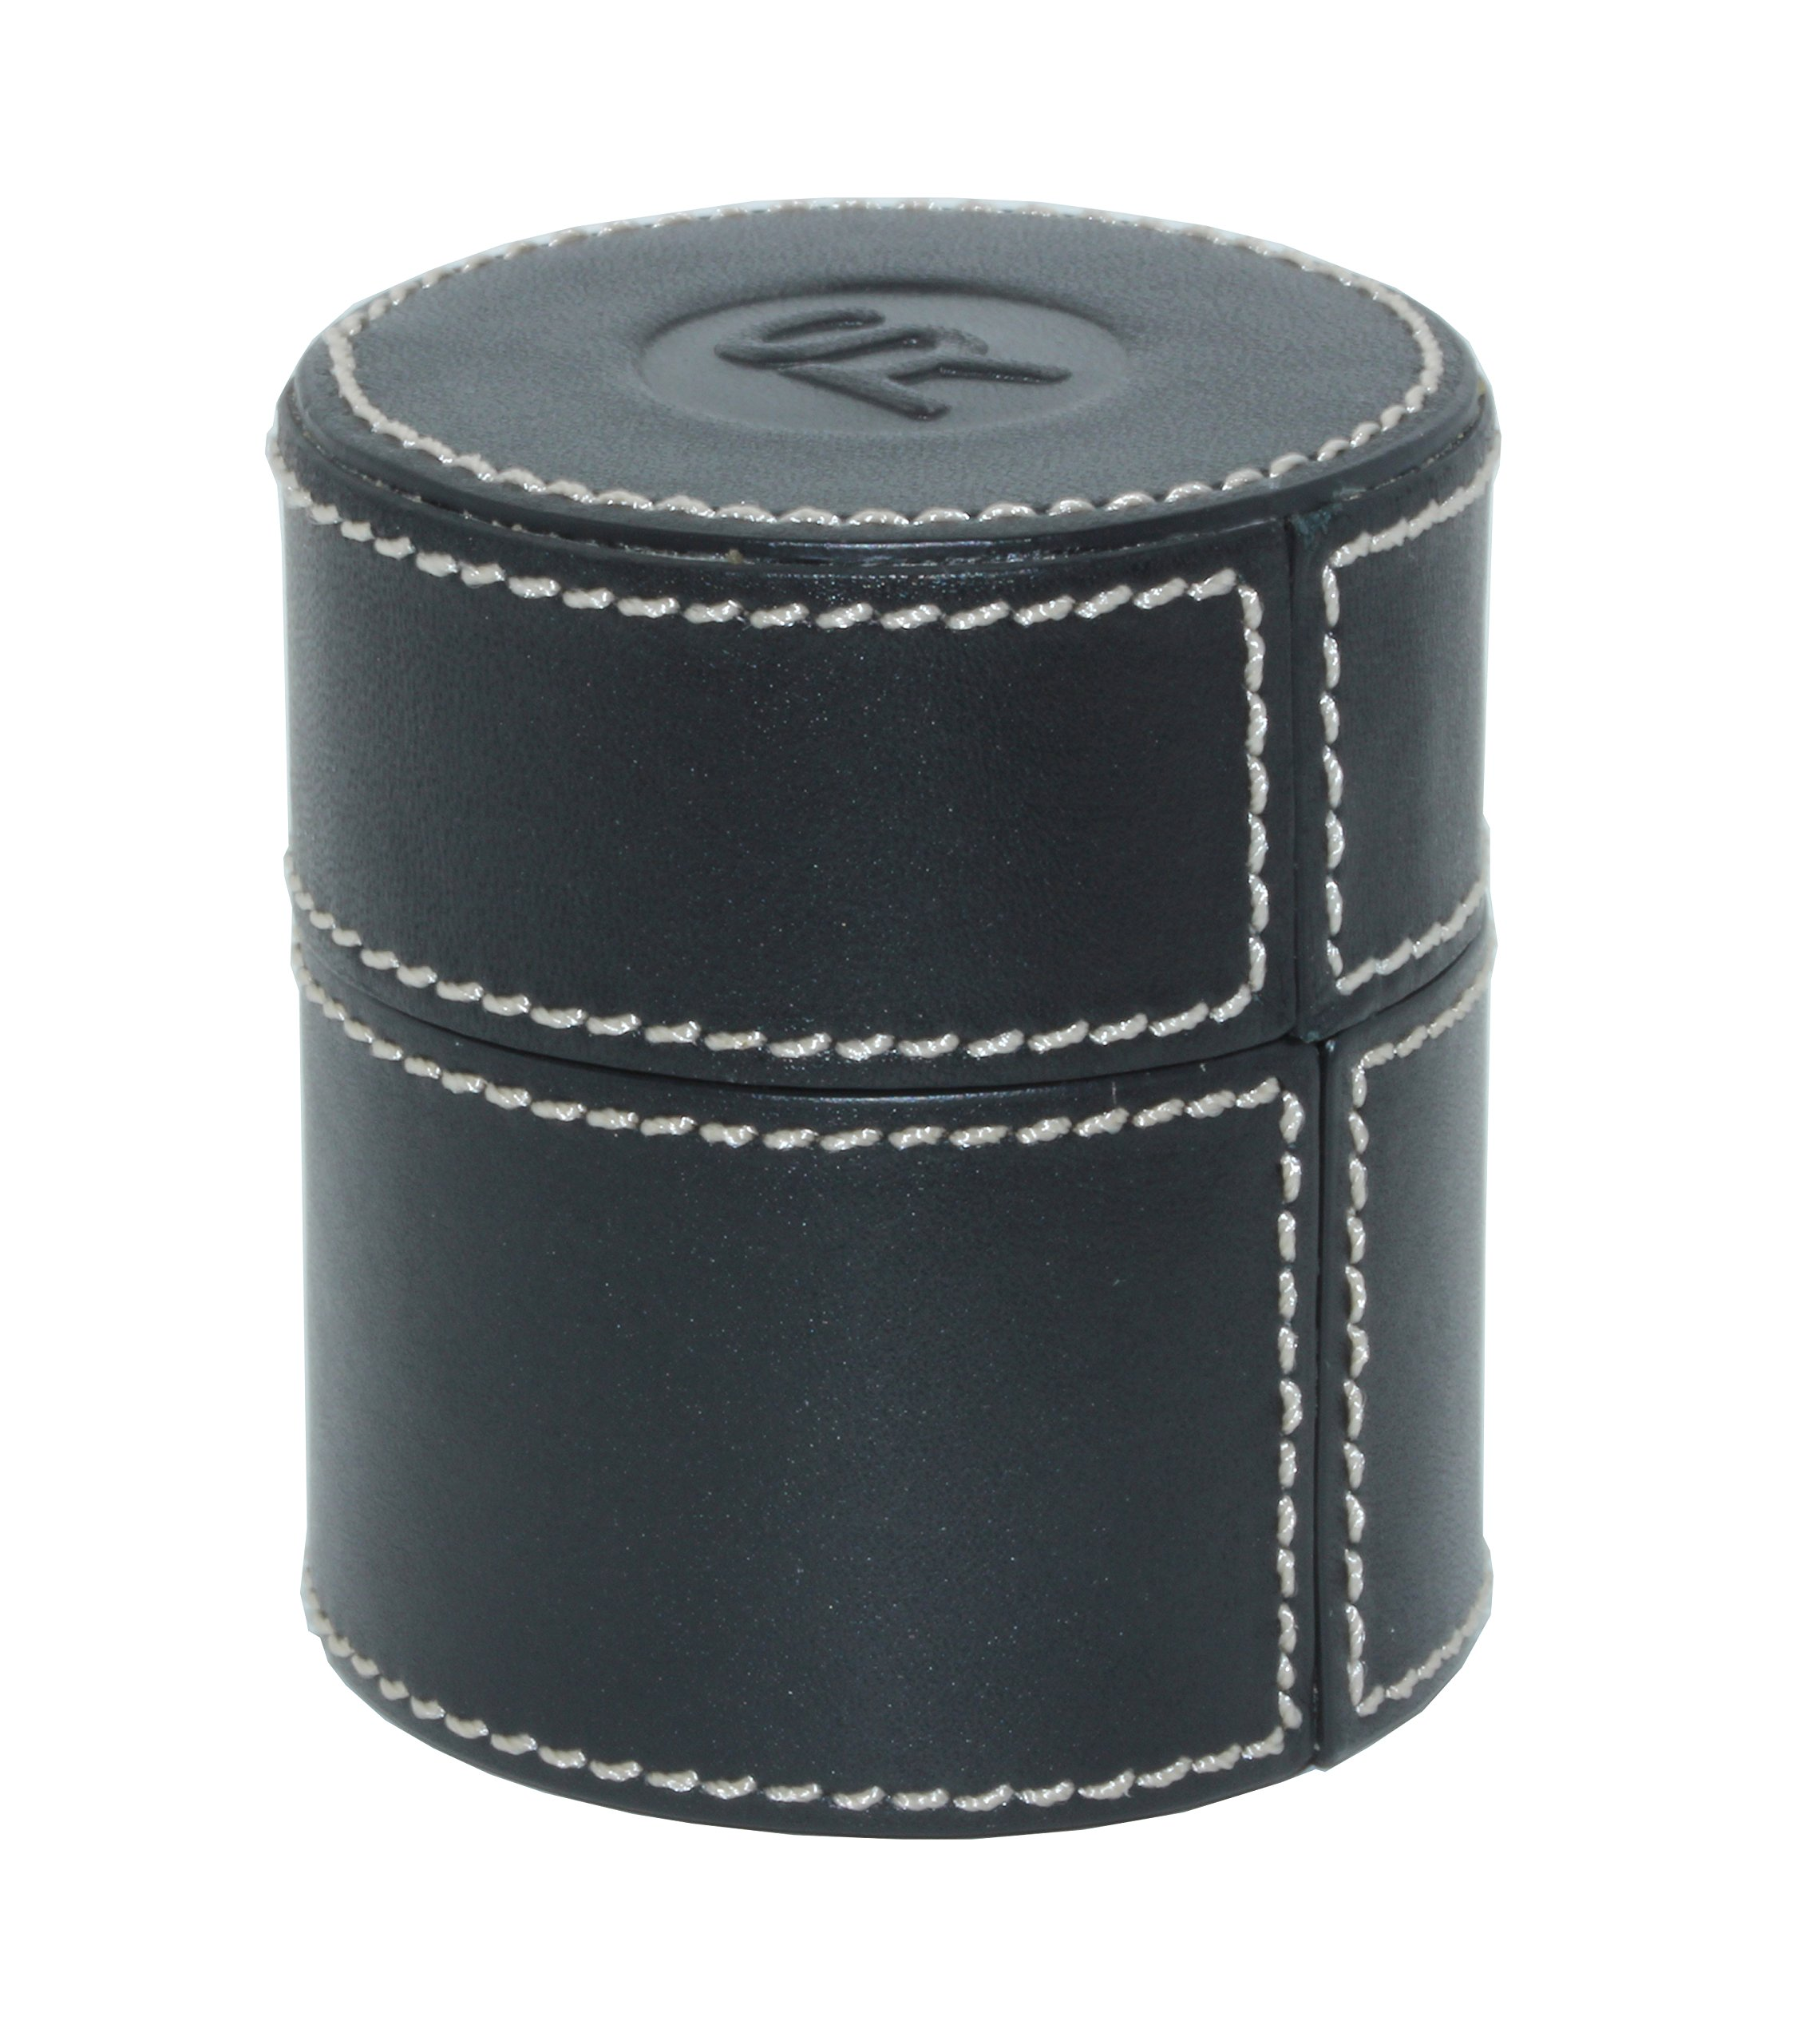 SWISS REIMAGINED Genuine Leather Jewelry Ring Loupe Safe Storage Travel Case - Black